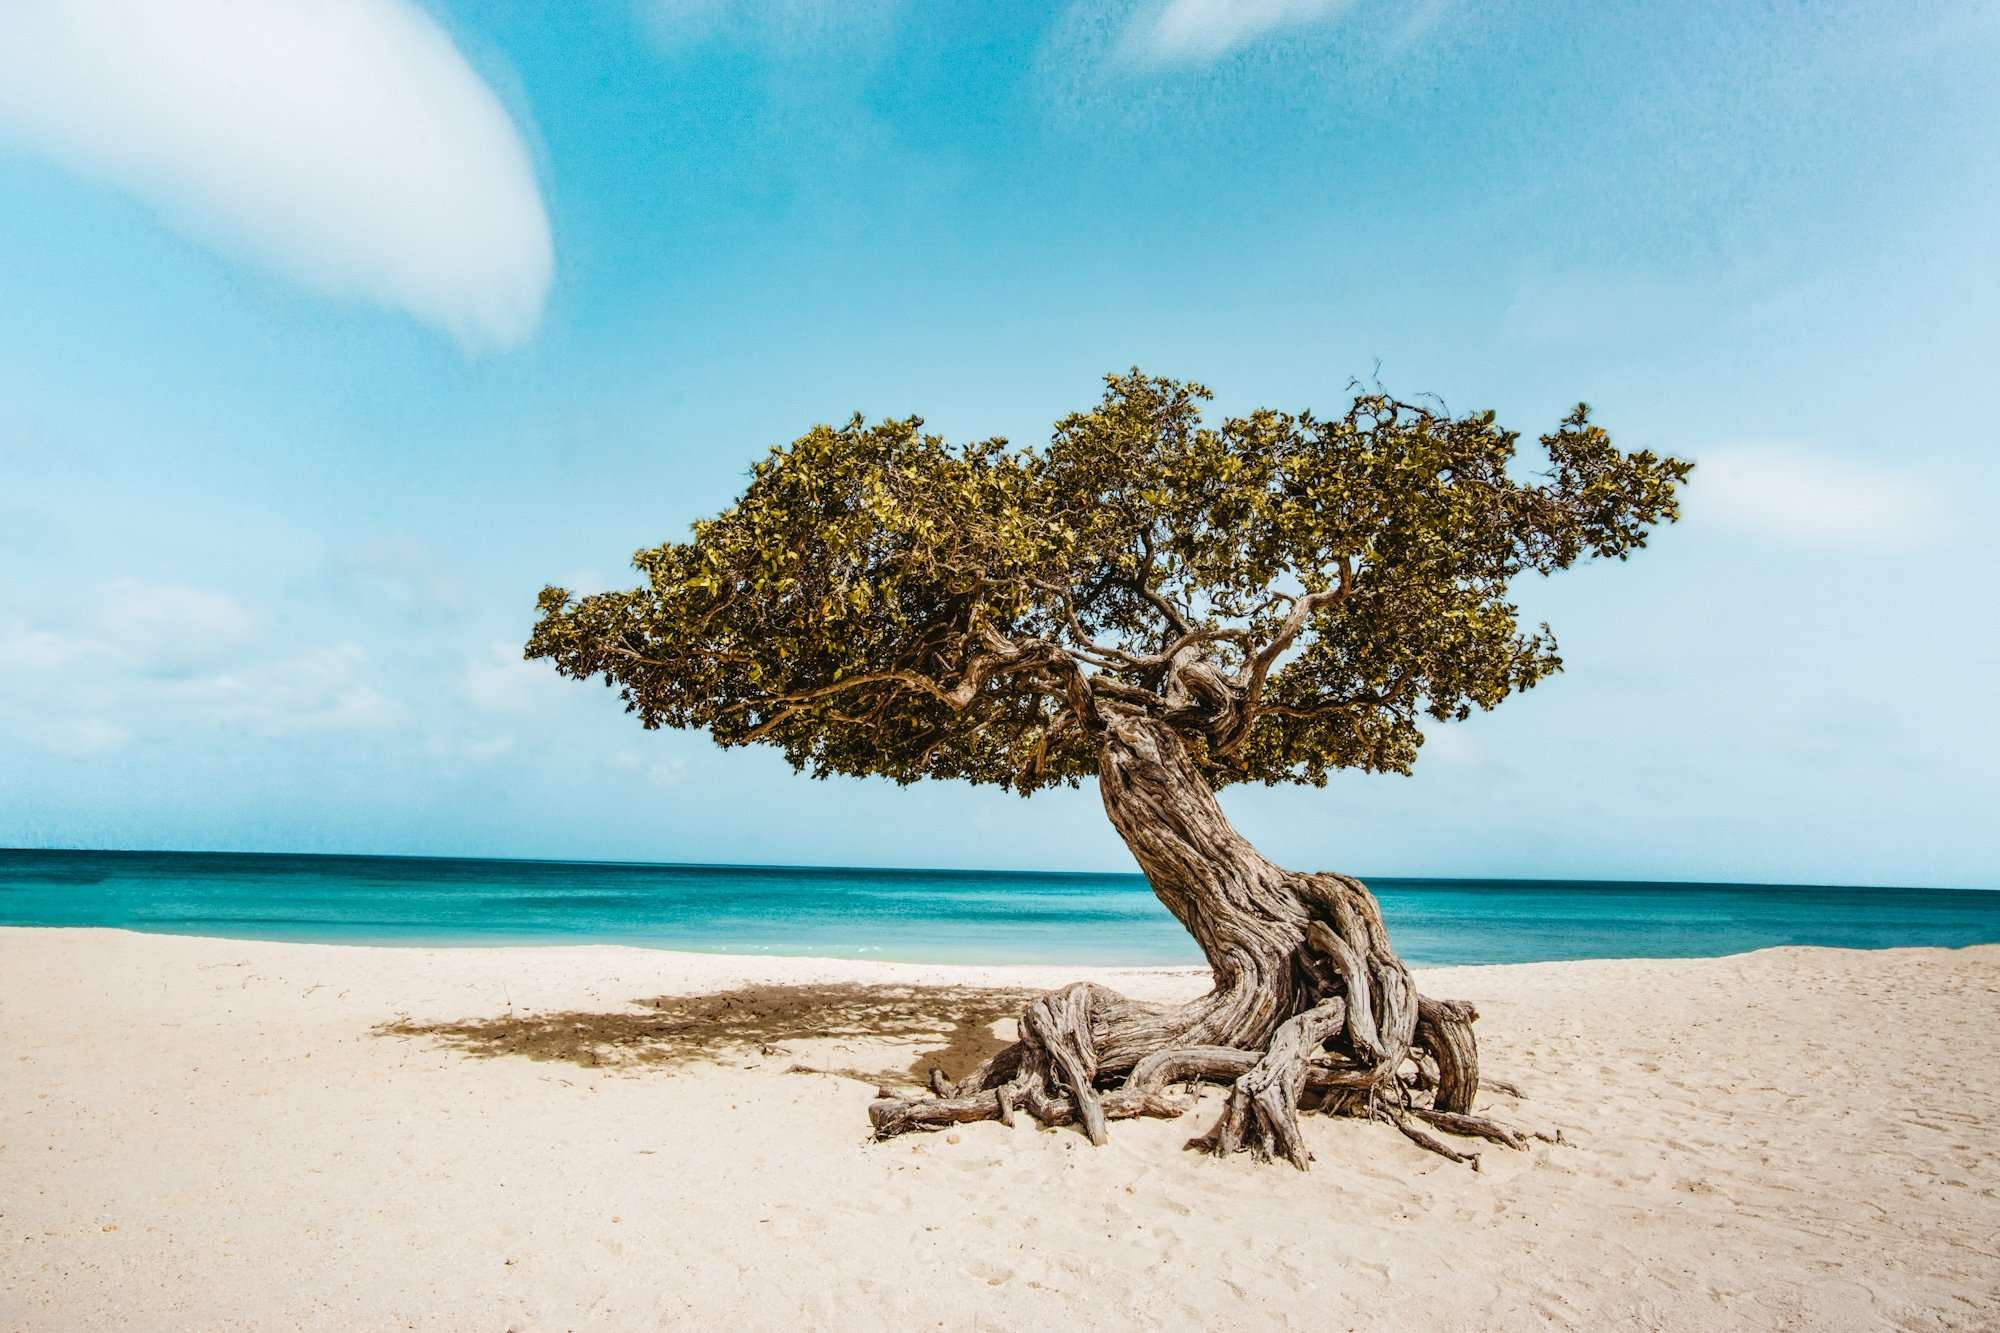 Your Ultimate Guide To 1 Week in Aruba